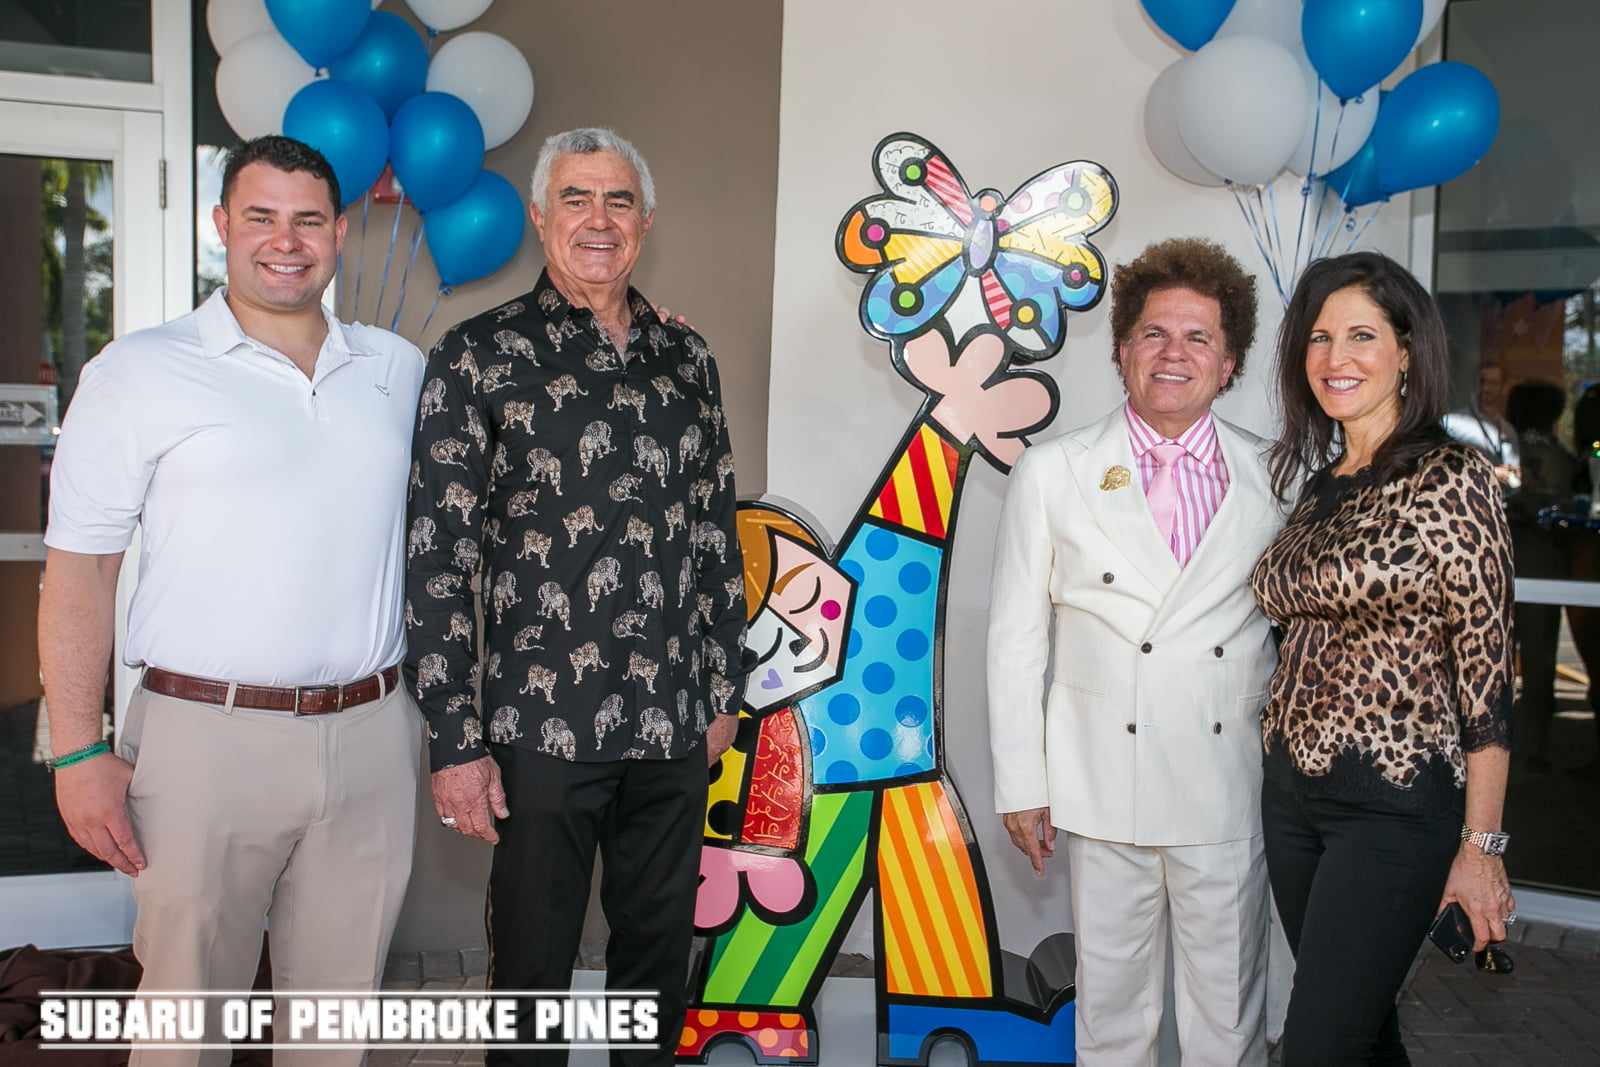 Craig and Martine Zinn, and Subaru of Pembroke Pines Chooses JAFCO as Beneficiary Charity for the Share the Love Event